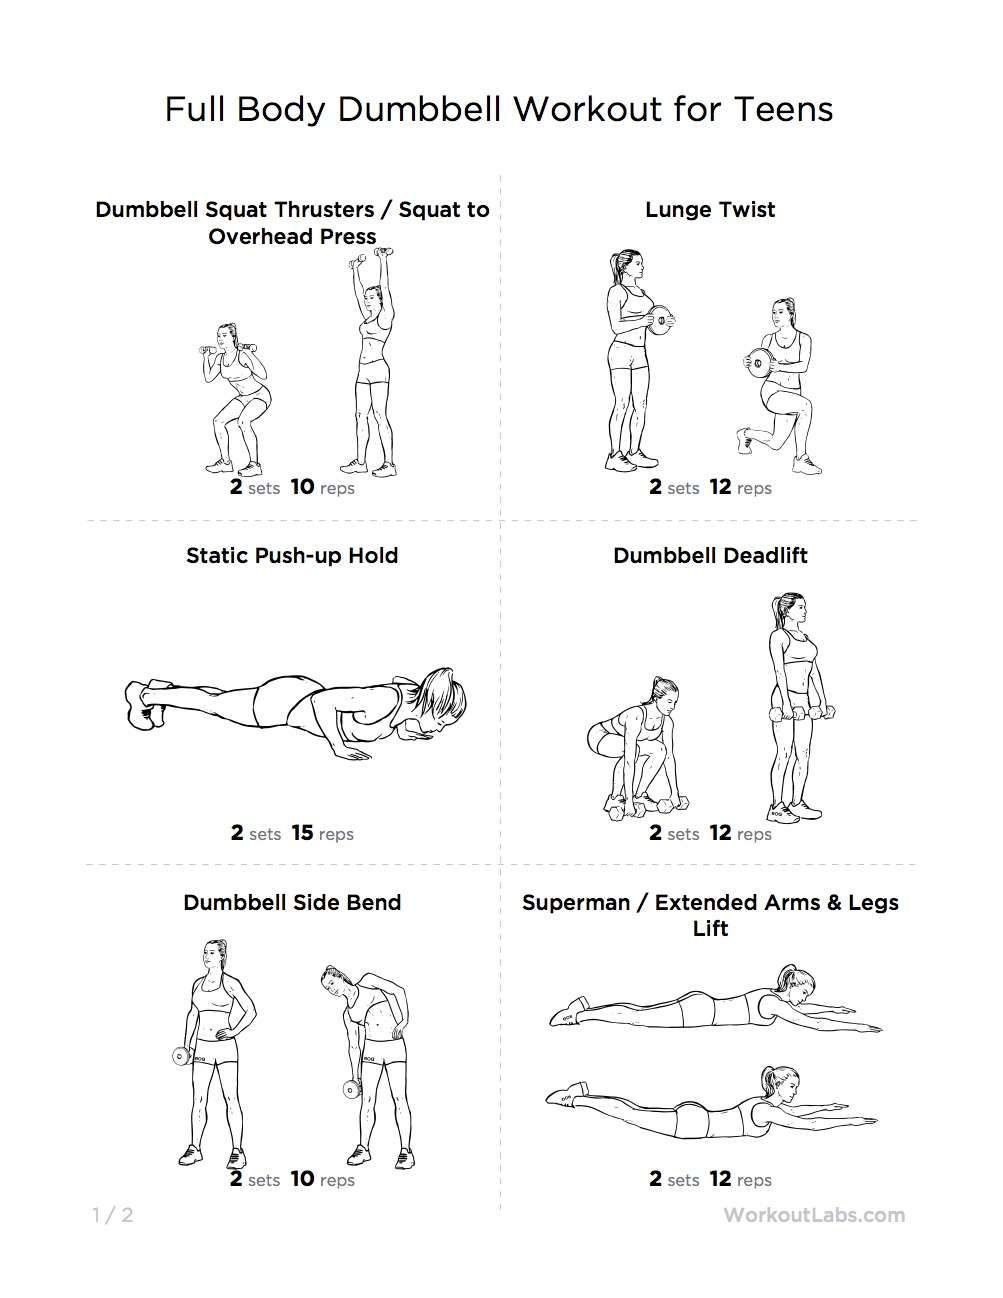 Alicia Marie You Weight Ball Exercises Workout Routines For